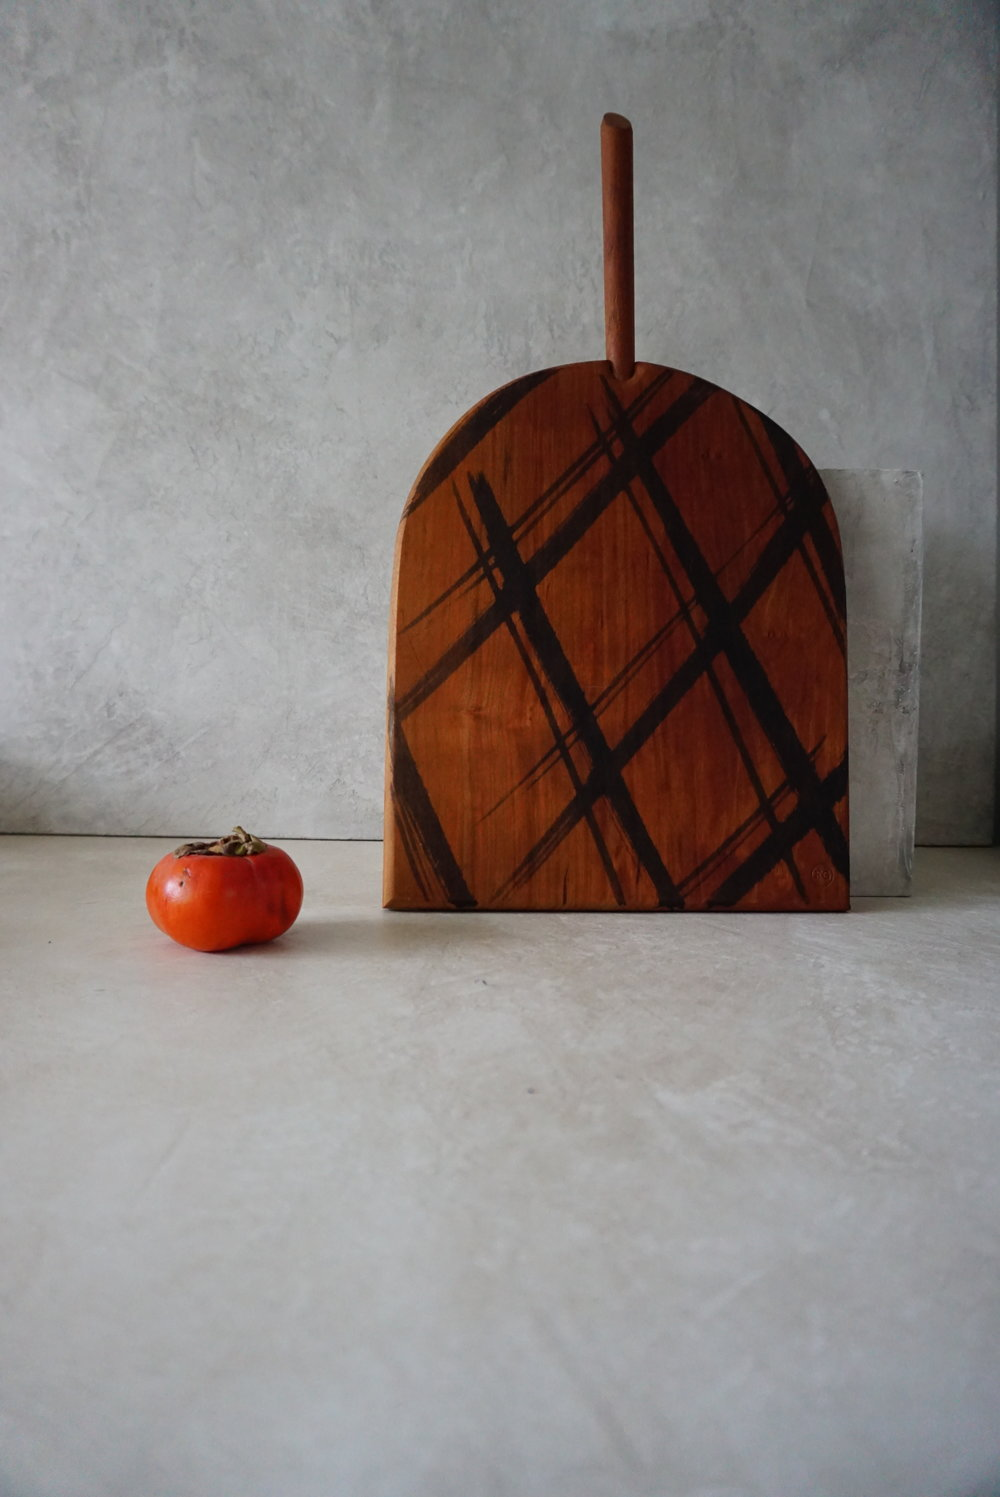 plaid board sizes vary available in walnut or cherry SRP $48 - 128 USD